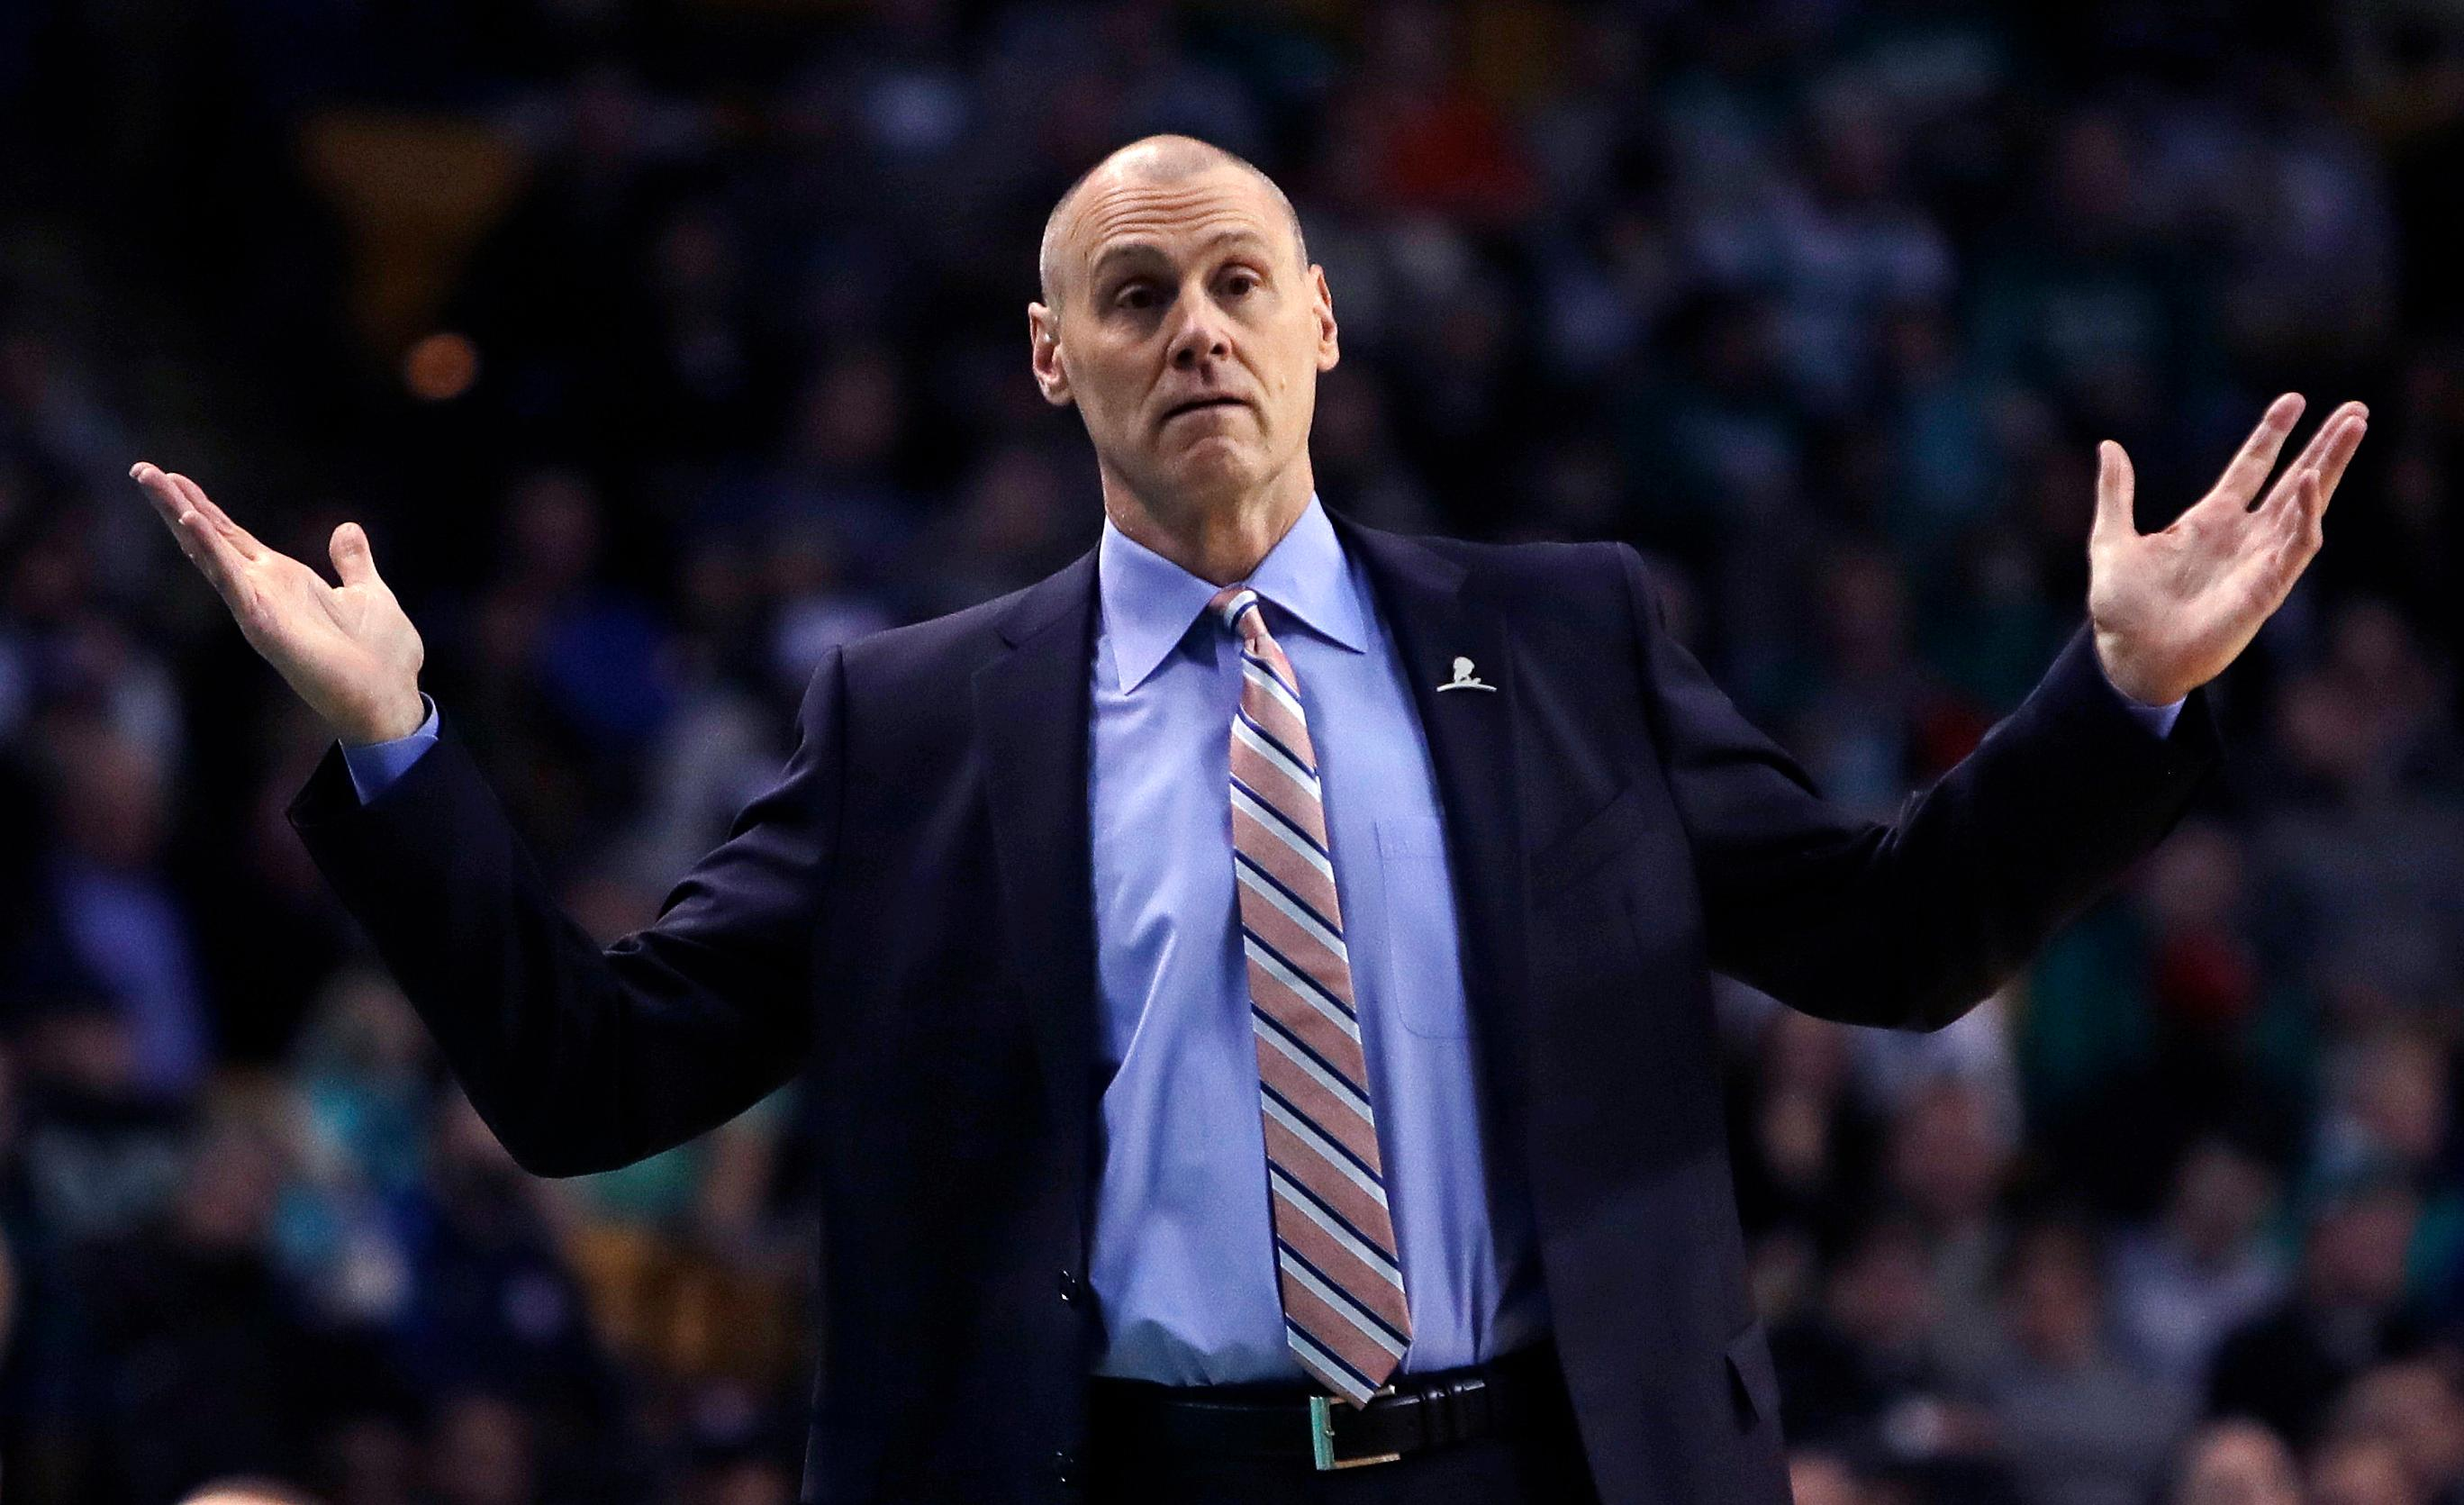 Dallas Mavericks head coach Rick Carlisle gestures towards an official during the first quarter of an NBA basketball game against the Boston Celtics in Boston, Wednesday, Dec. 6, 2017. (AP Photo/Charles Krupa)